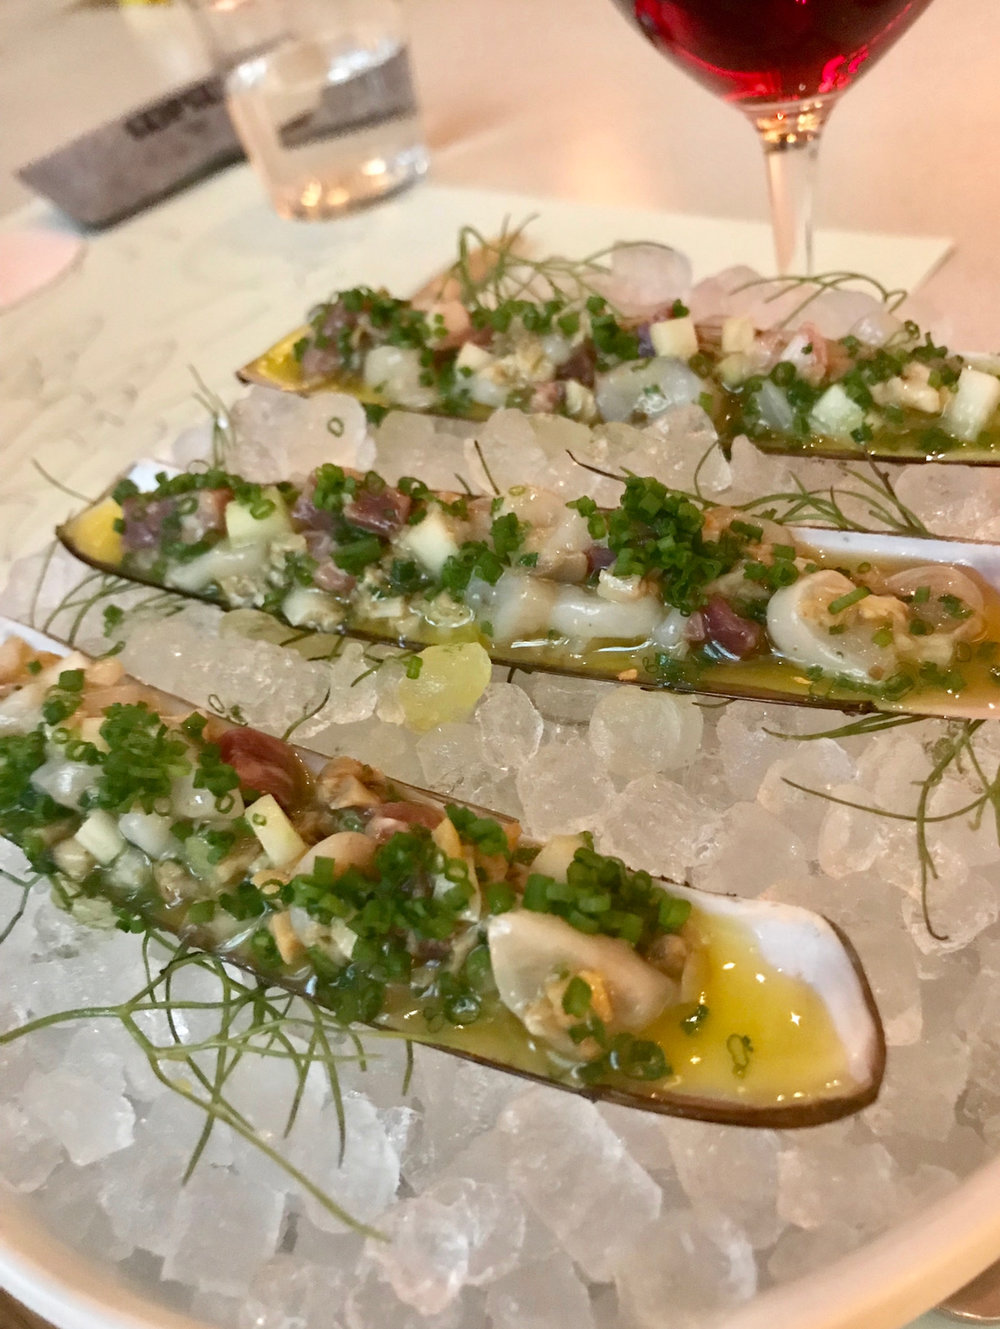 Lemony and bright razor clams at Scampi.